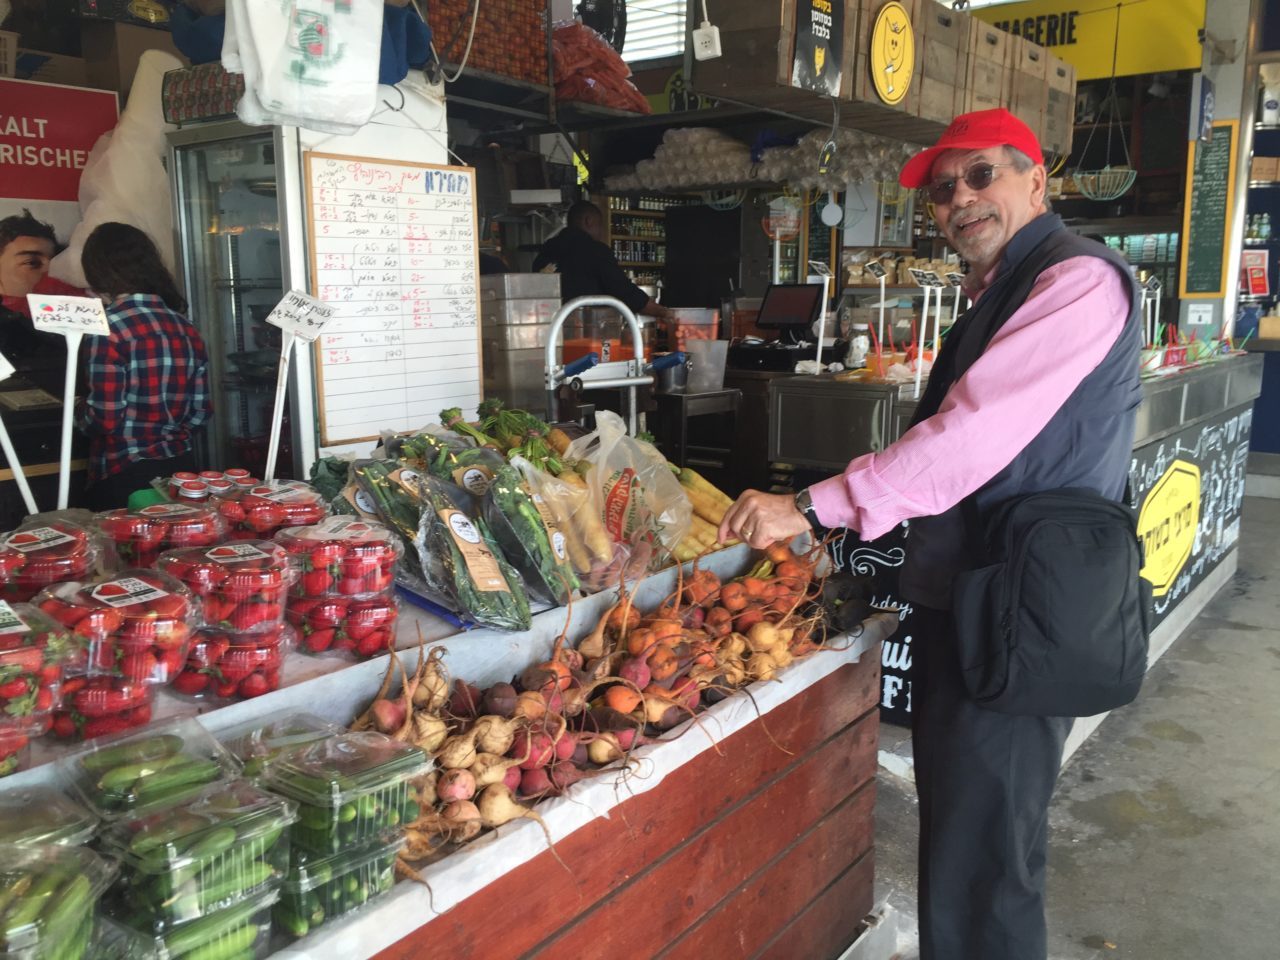 Vacationing in Israel ... The Kitchen Market in the old port of Tel Aviv